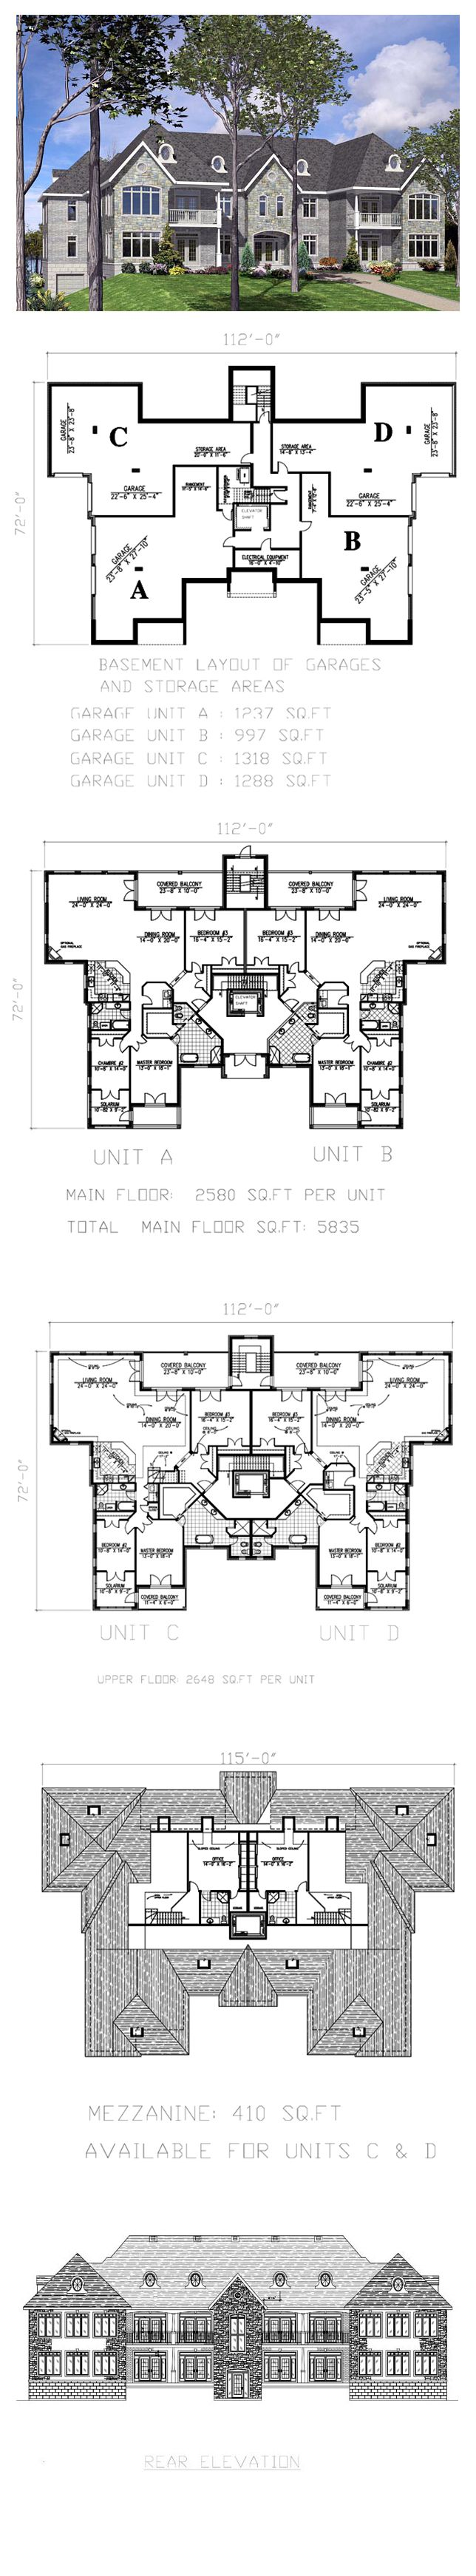 125 best images about duplex apartment plans on for Income property floor plans